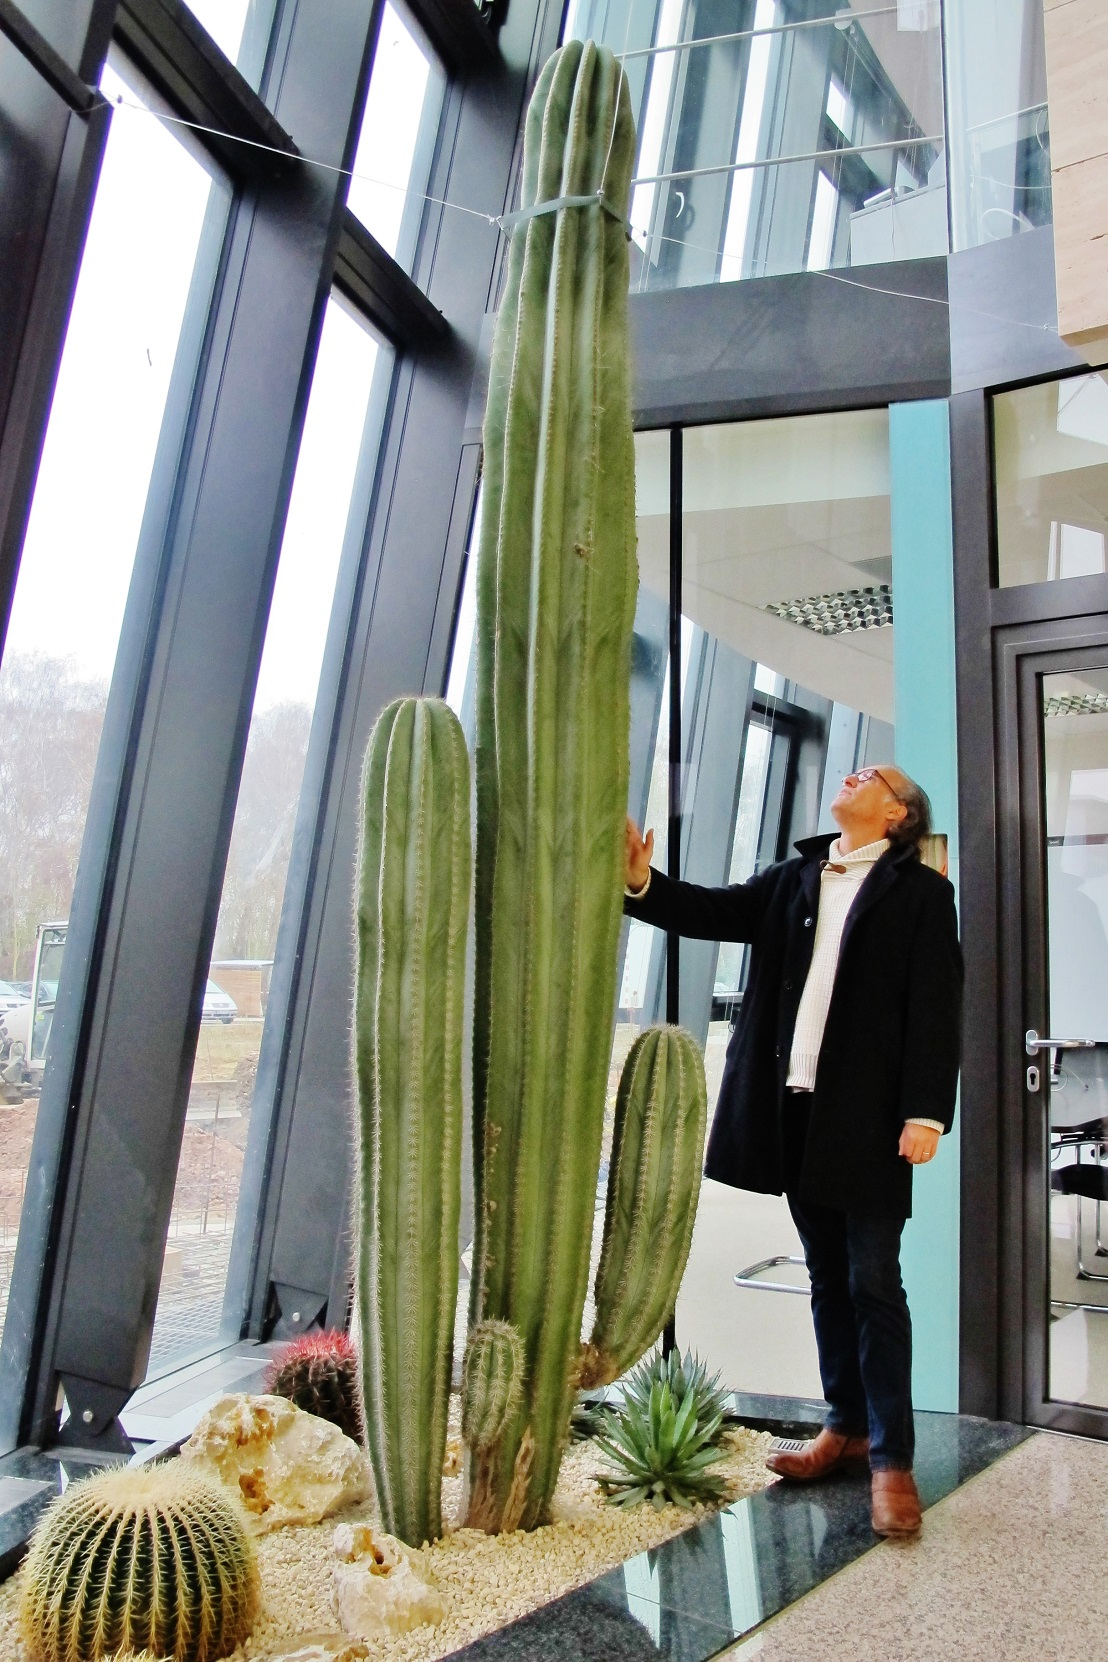 Big tropical cacti interior lobby and stairway - Norway, Finland, Sweden, Denmark - Europe buy online